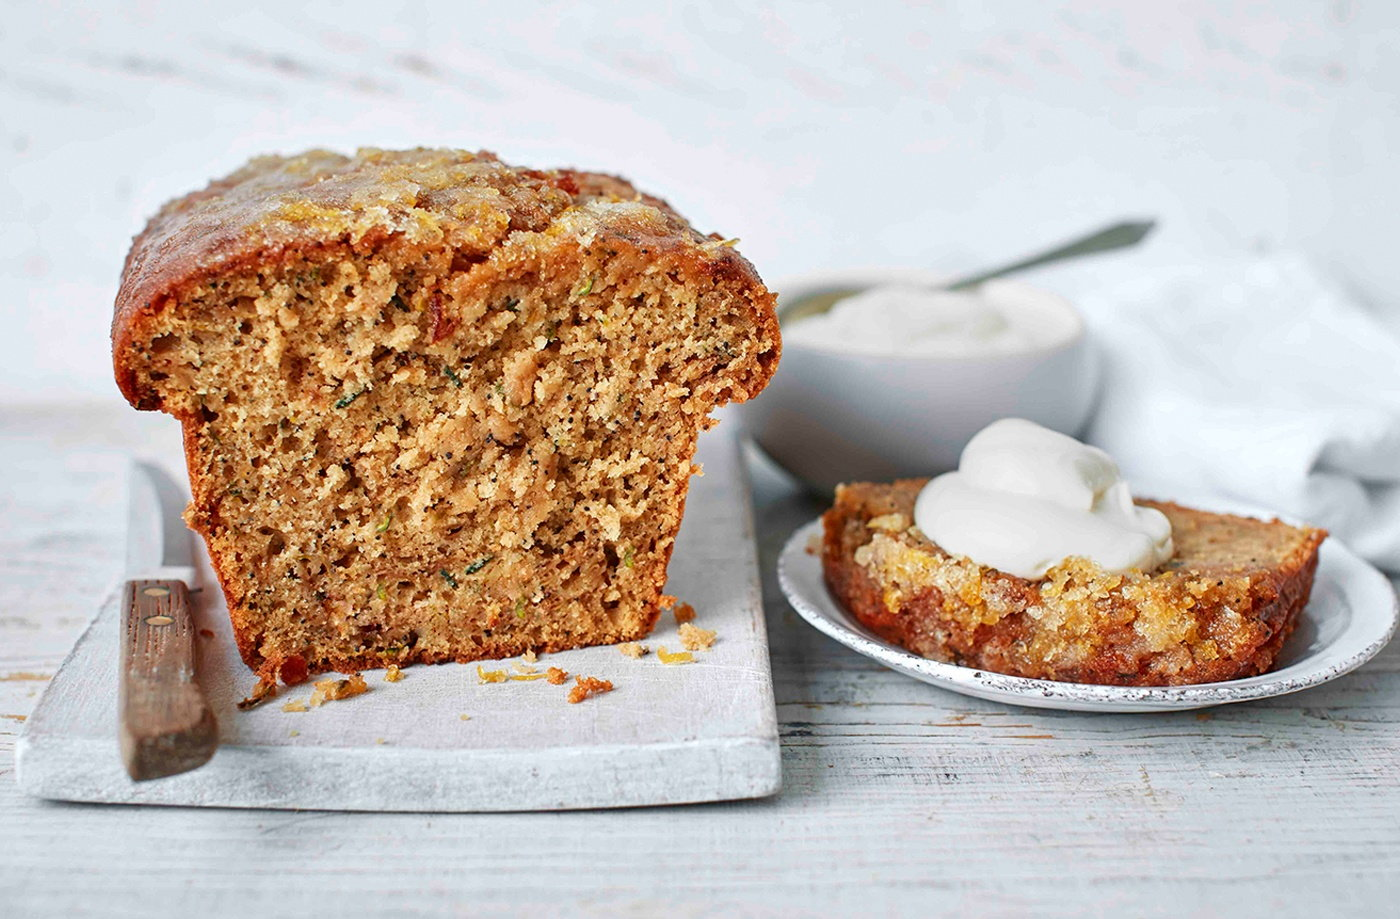 Courgette, lemon and poppy seed cake recipe